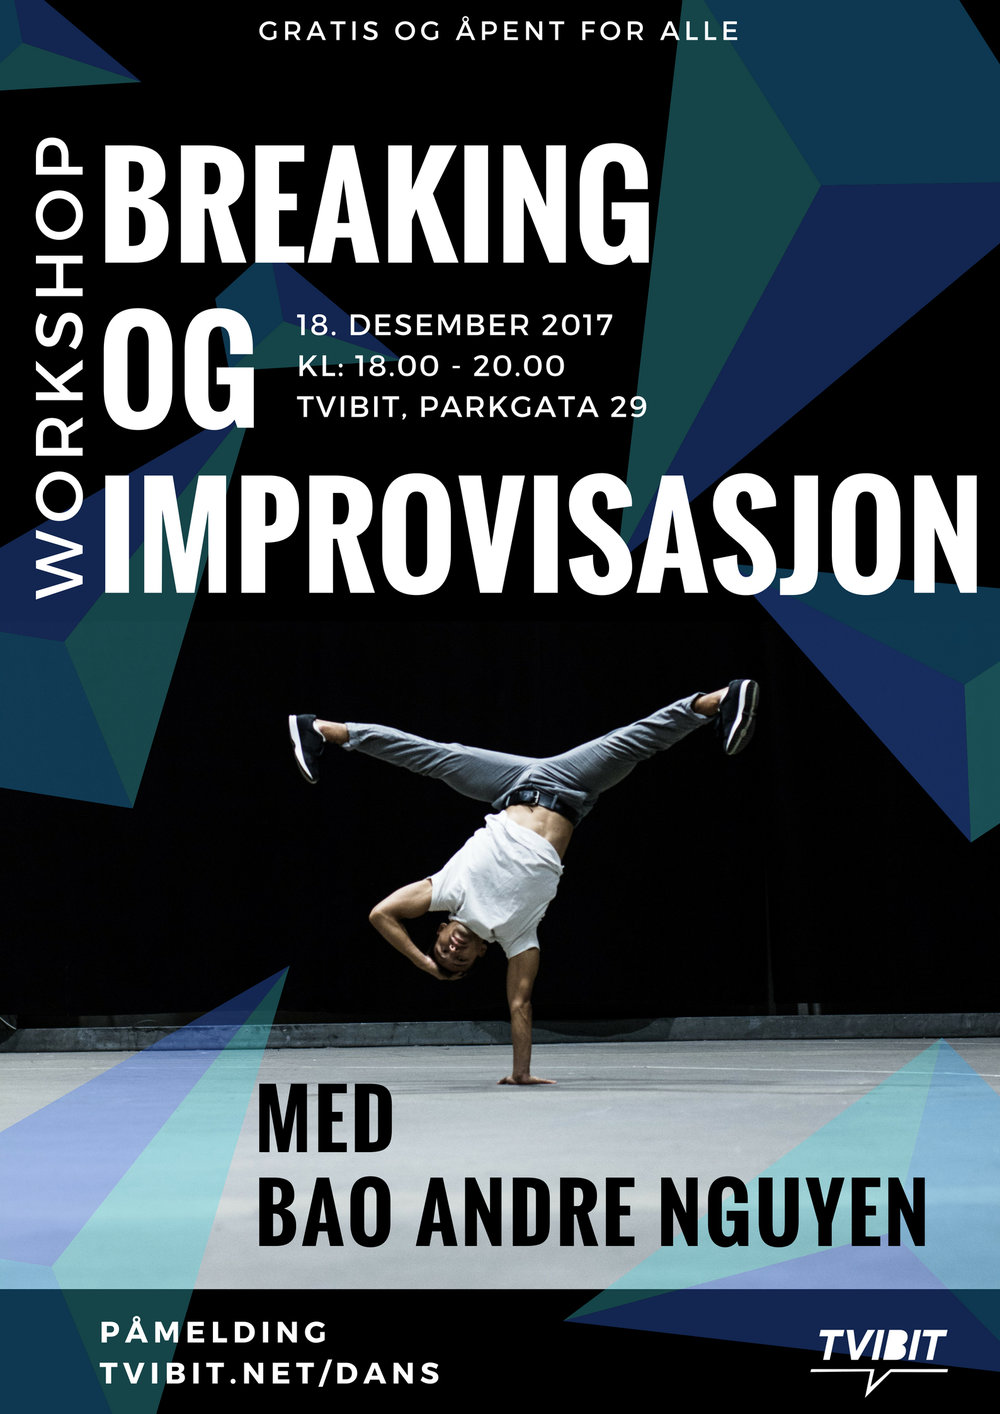 BREAKDANCE & IMPROTEKNIKKWORKSHOP.jpg